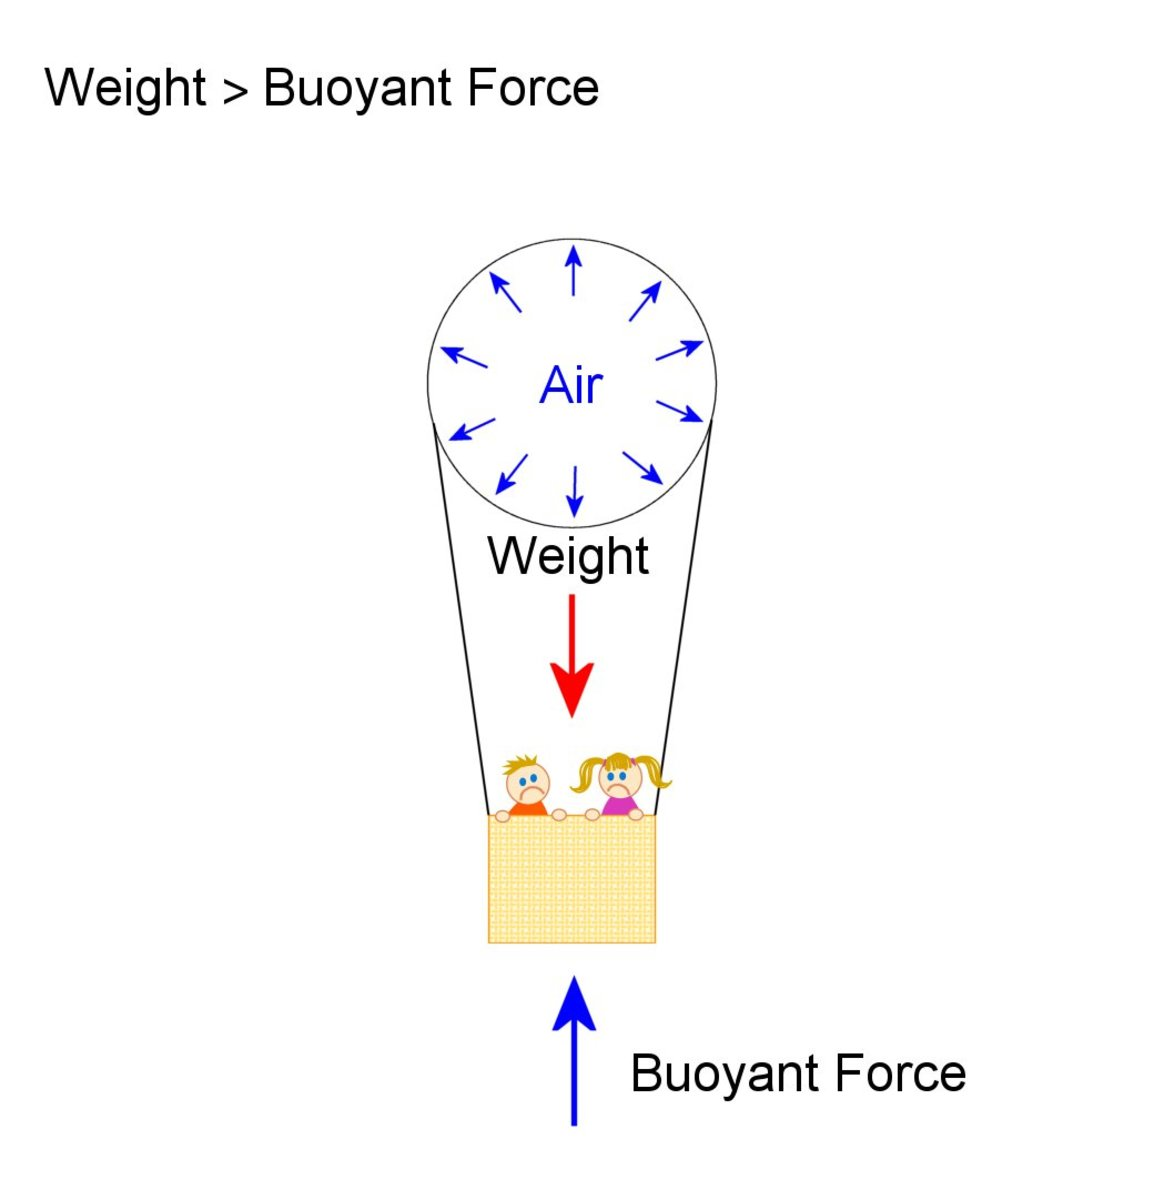 Weight of balloon and air inside (and also the basket and people, ropes etc) is greater than the buoyant force which is the weight of displaced air, so it sinks.